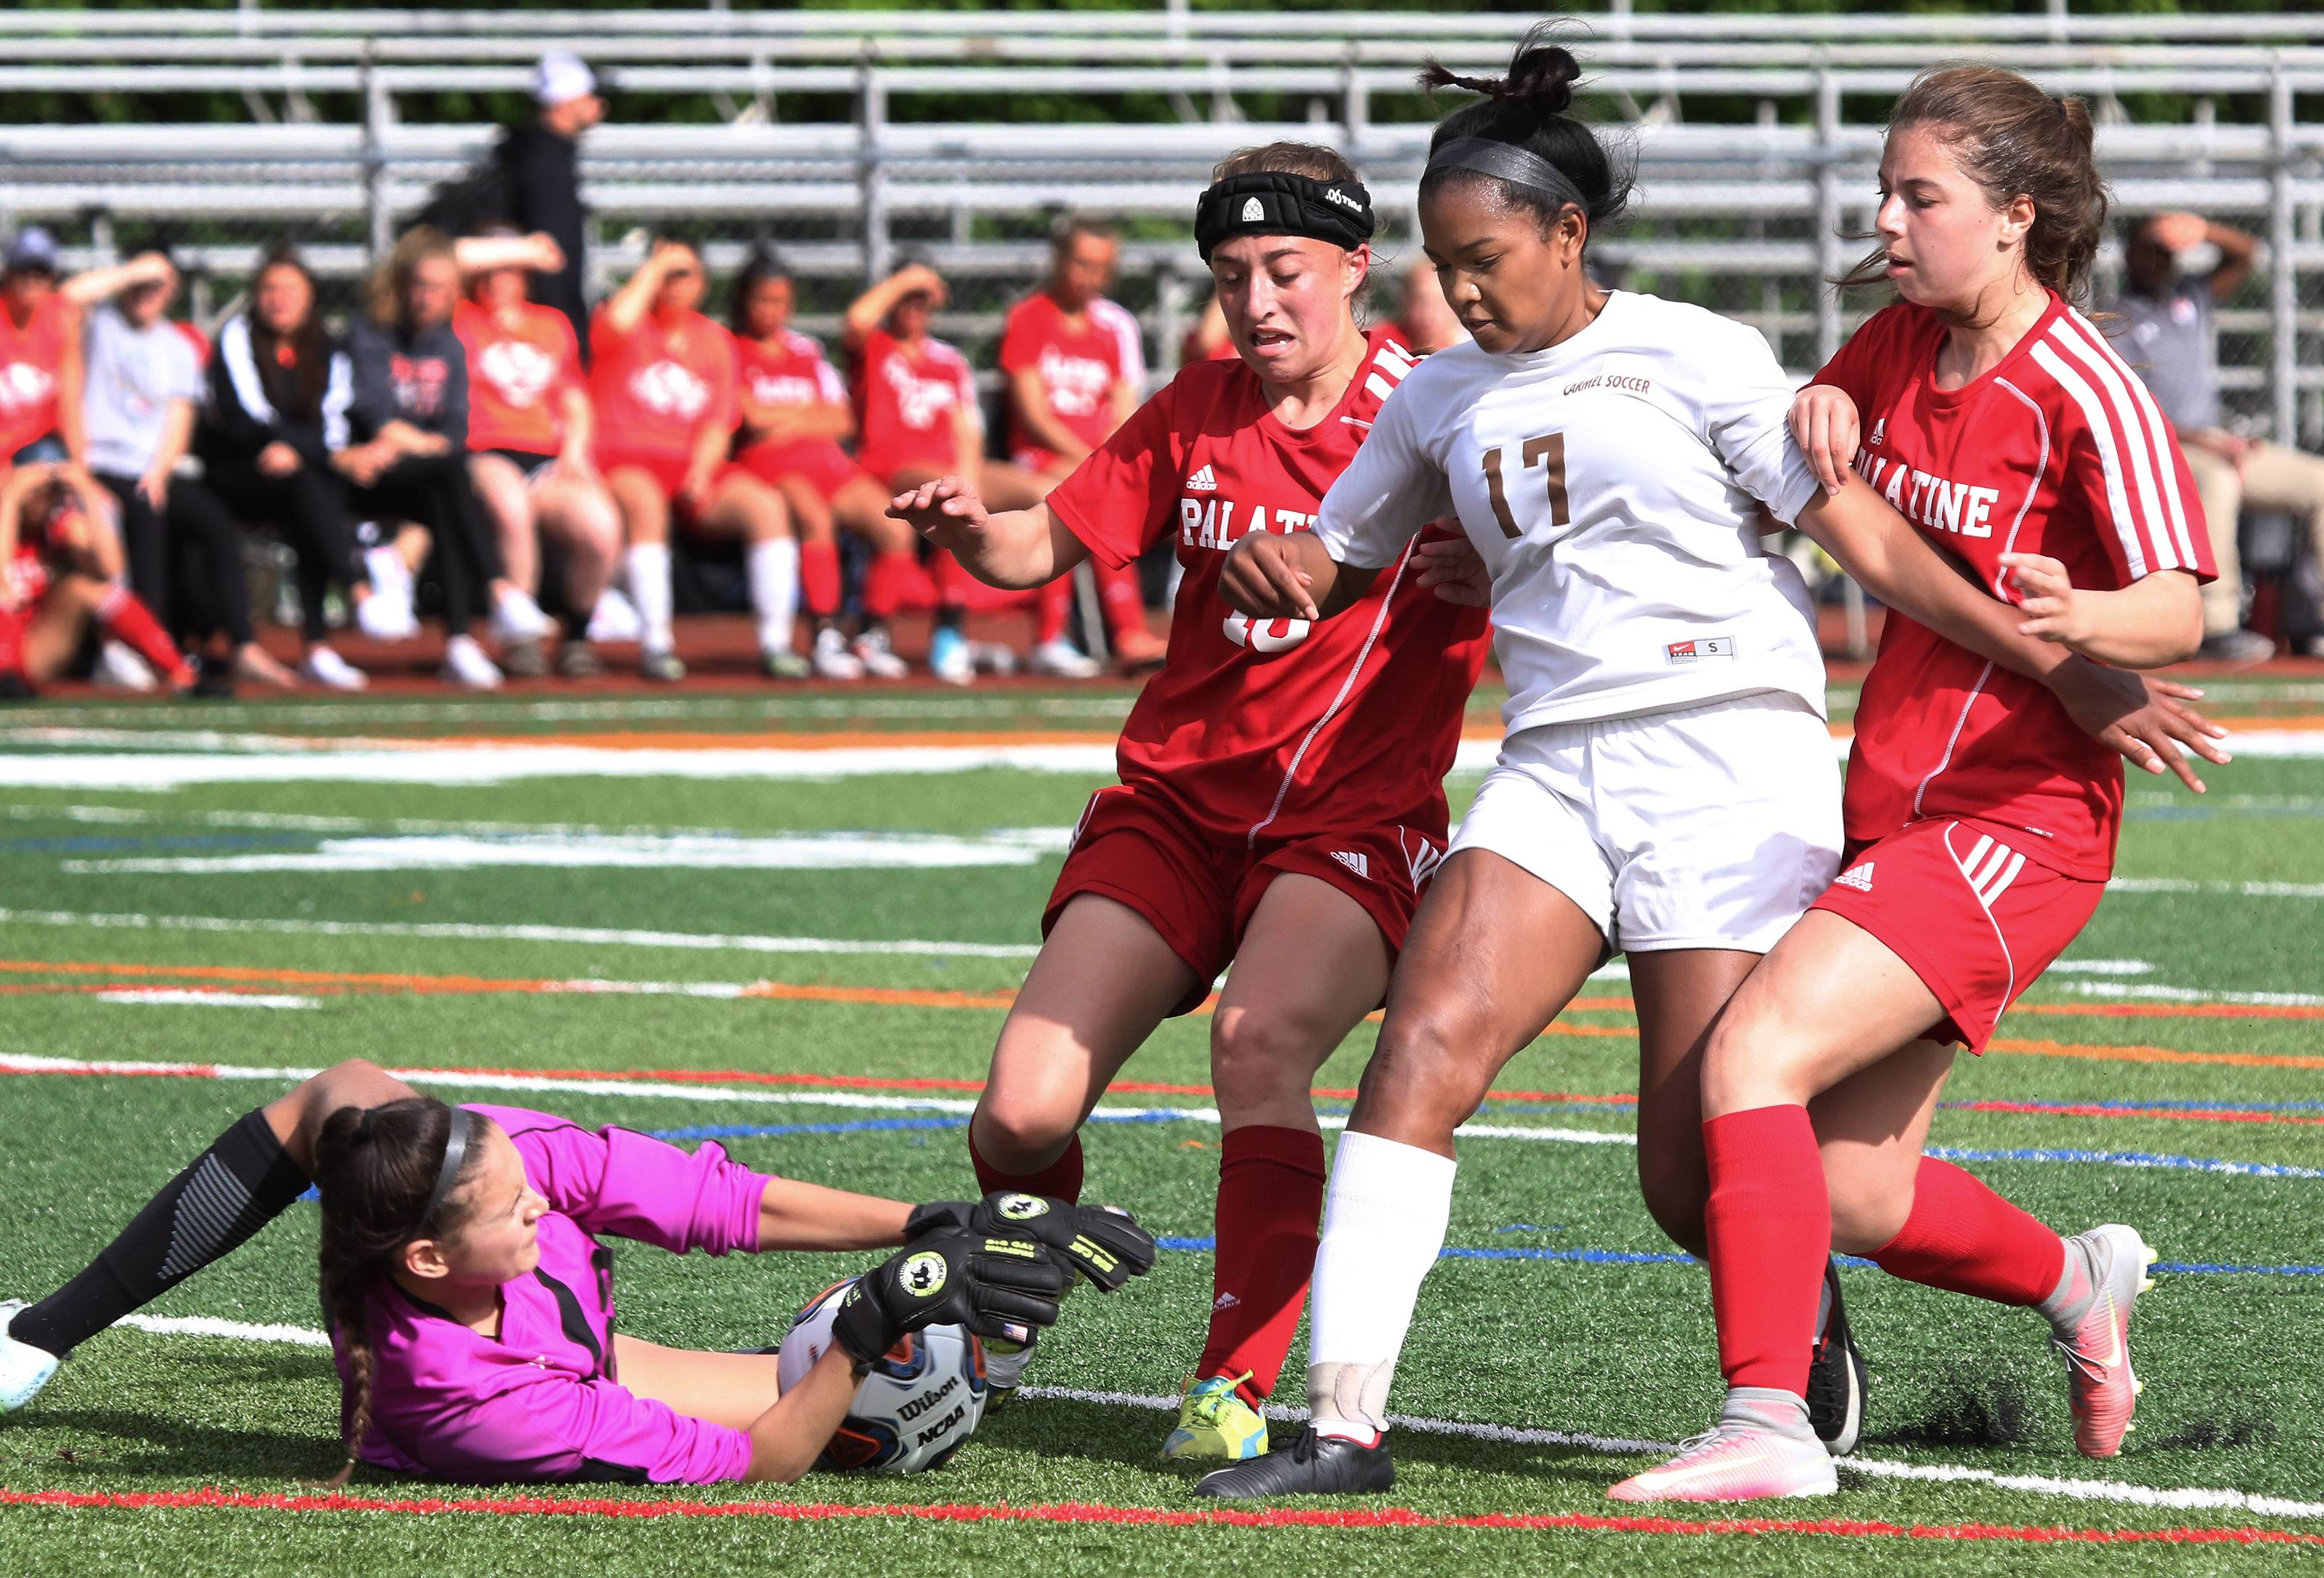 Palatine goalie Amaya Rivera stops a shot by Libertyville forward Zenaya Barnes as Palatine defenders Jamie Henning, left, and Julianna Mandarino try to stop her in Class 3A sectional semifinal play Tuesday in Libertyville.